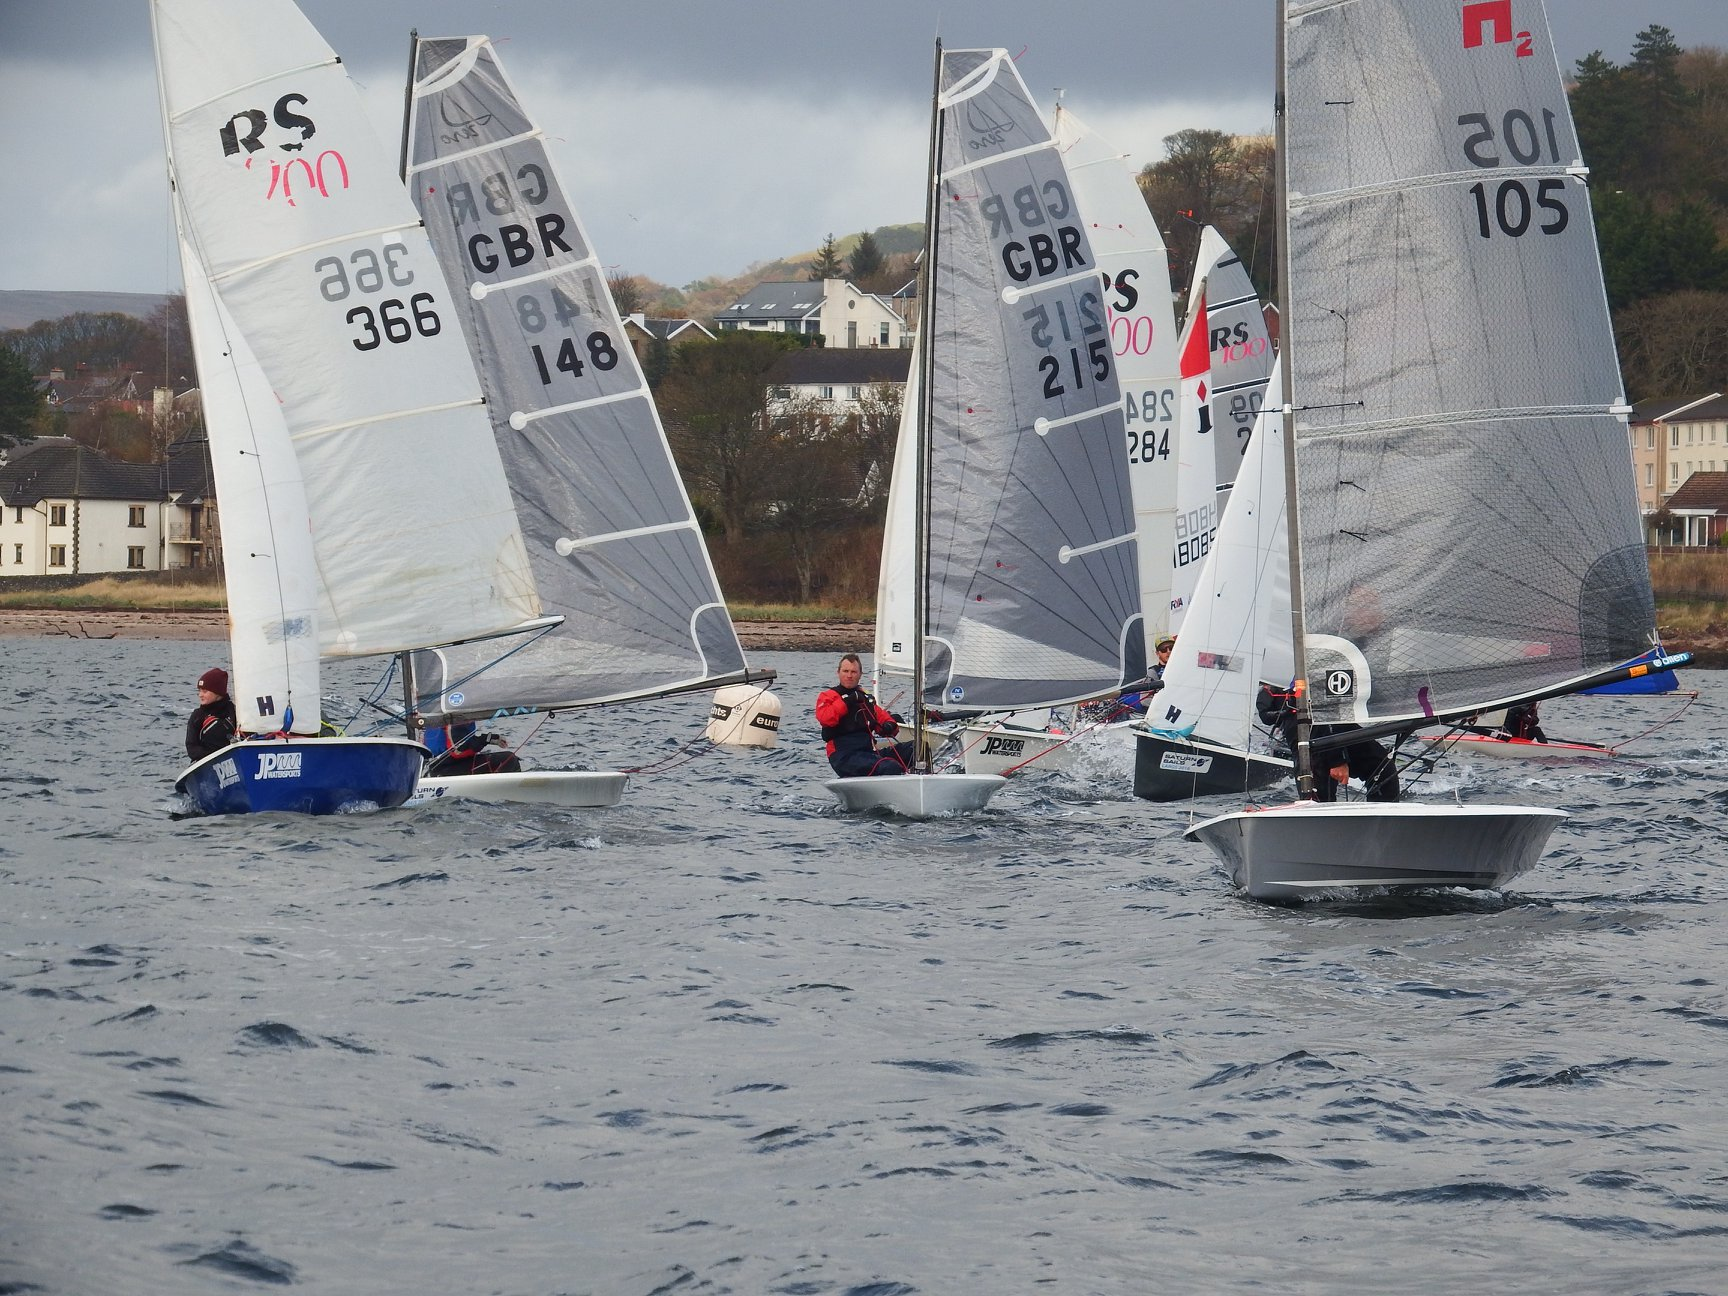 Club Racing at Largs SC